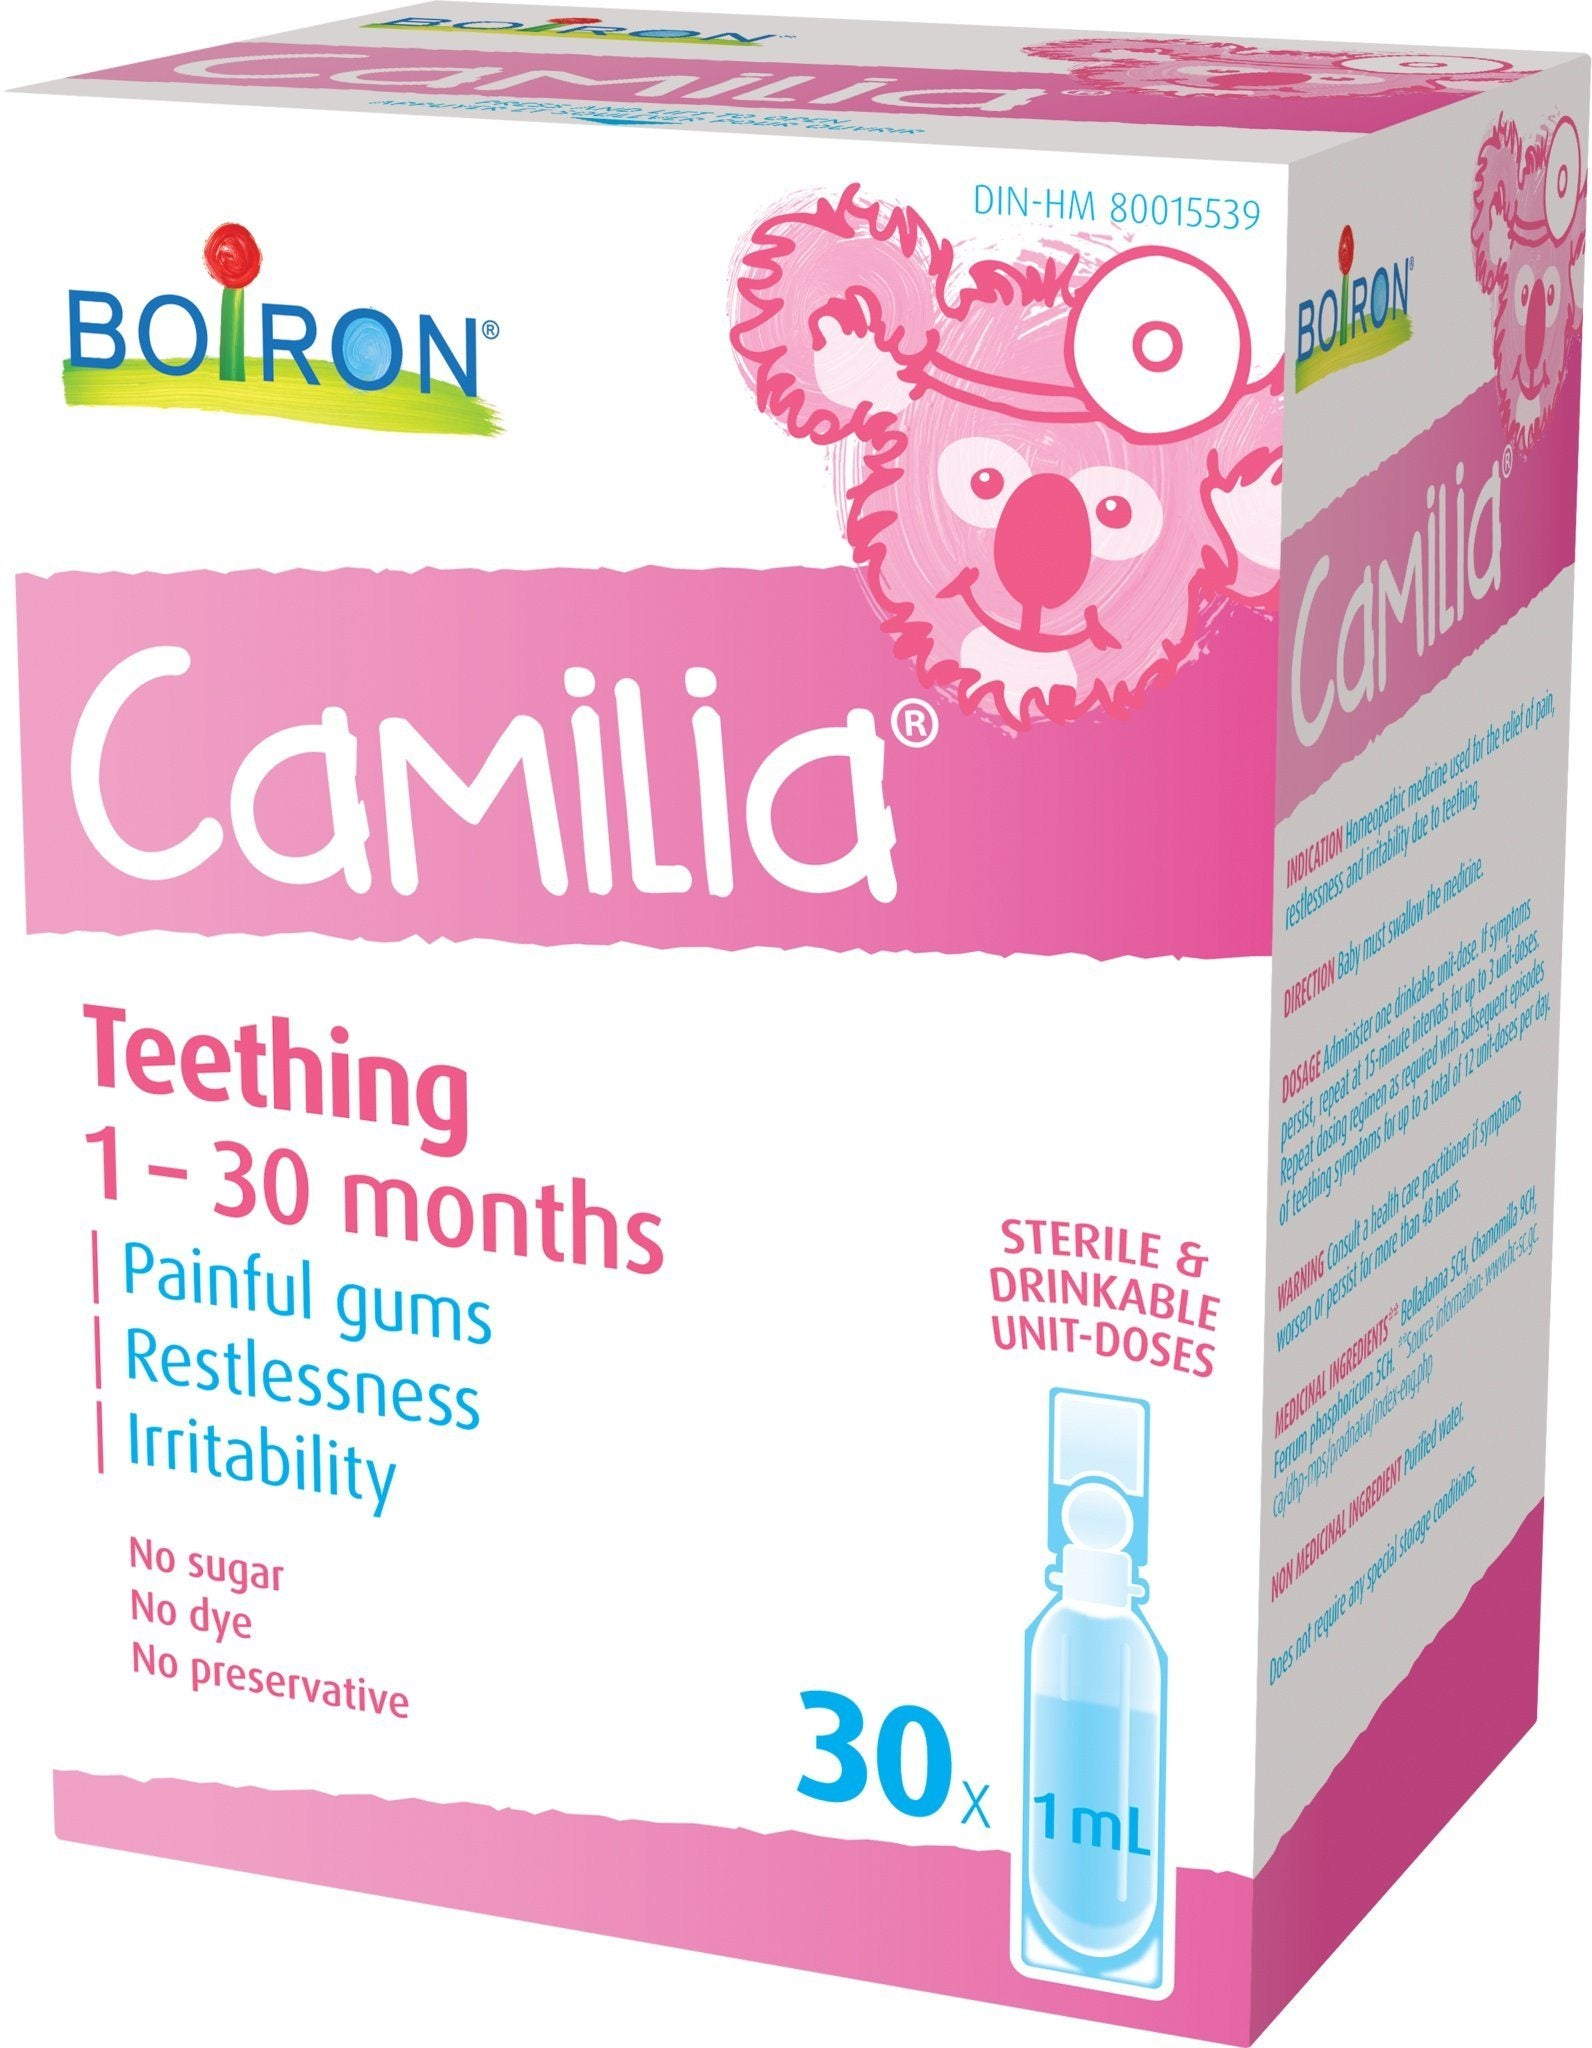 Supplements & Vitamins - Boiron - Camilia, 30 X 1ml Units